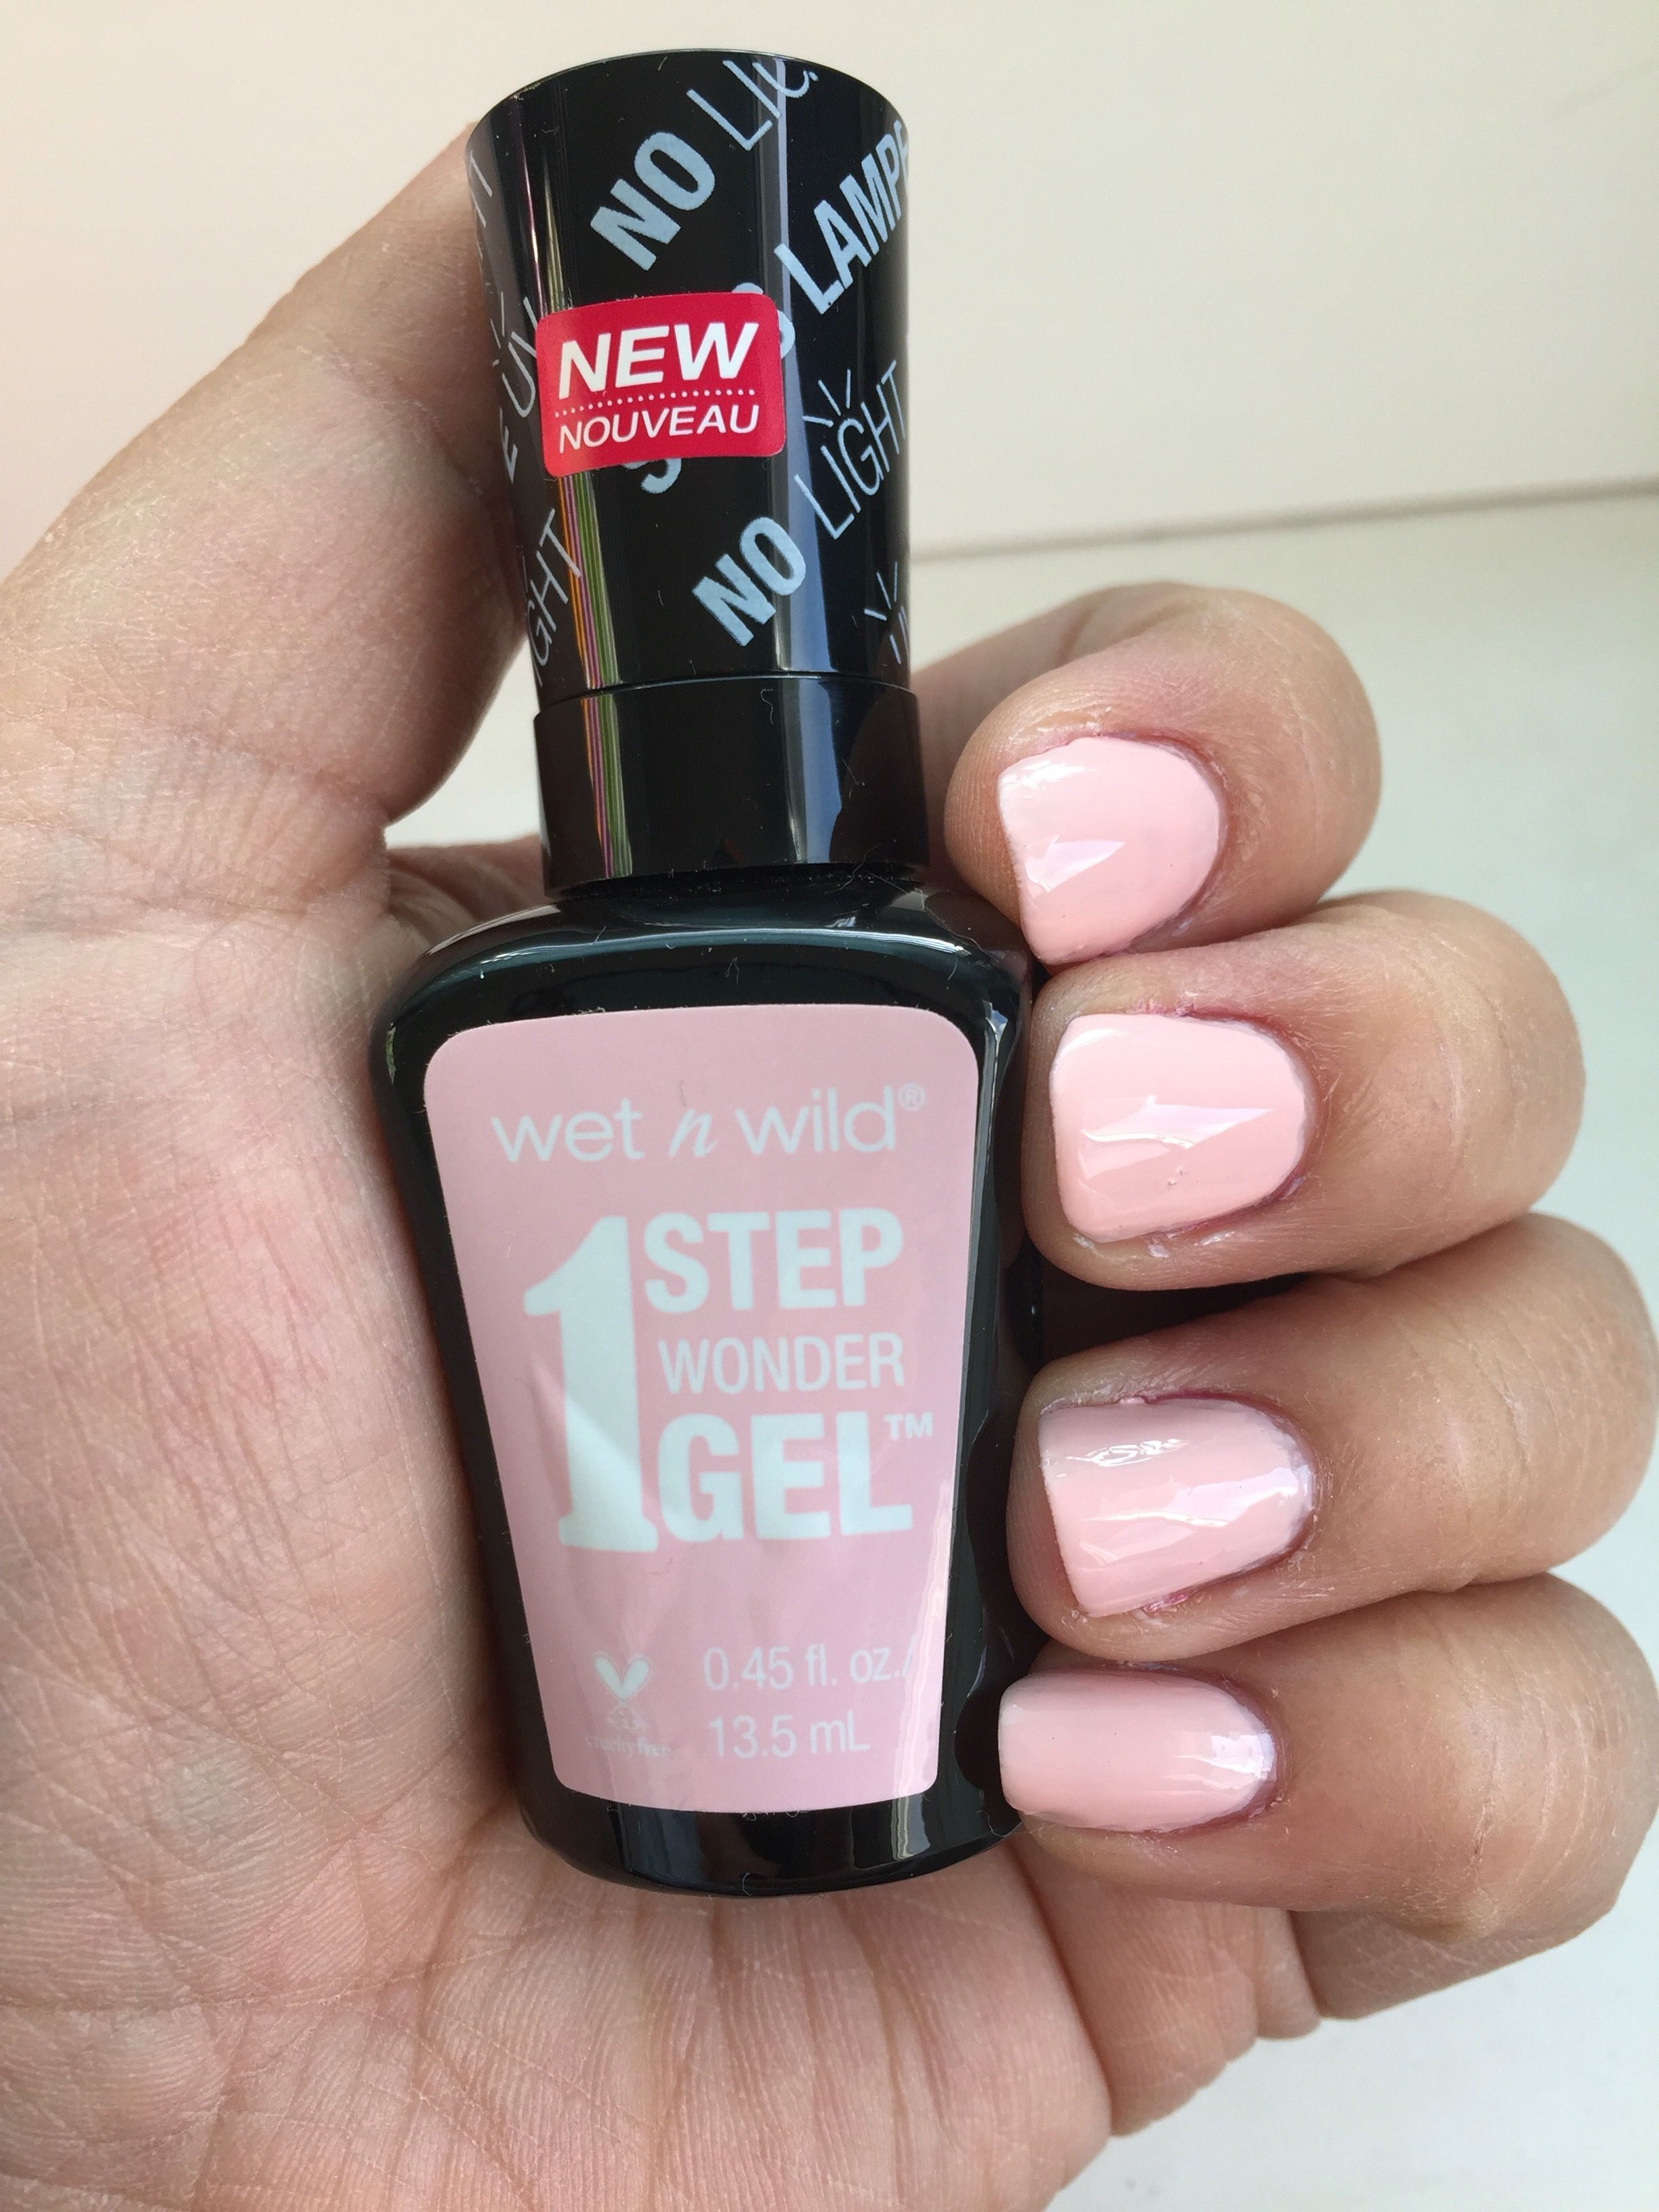 Wet n Wild 1 Step Wonder Gel Nail Polish* | Gel nail polish, Makeup ...